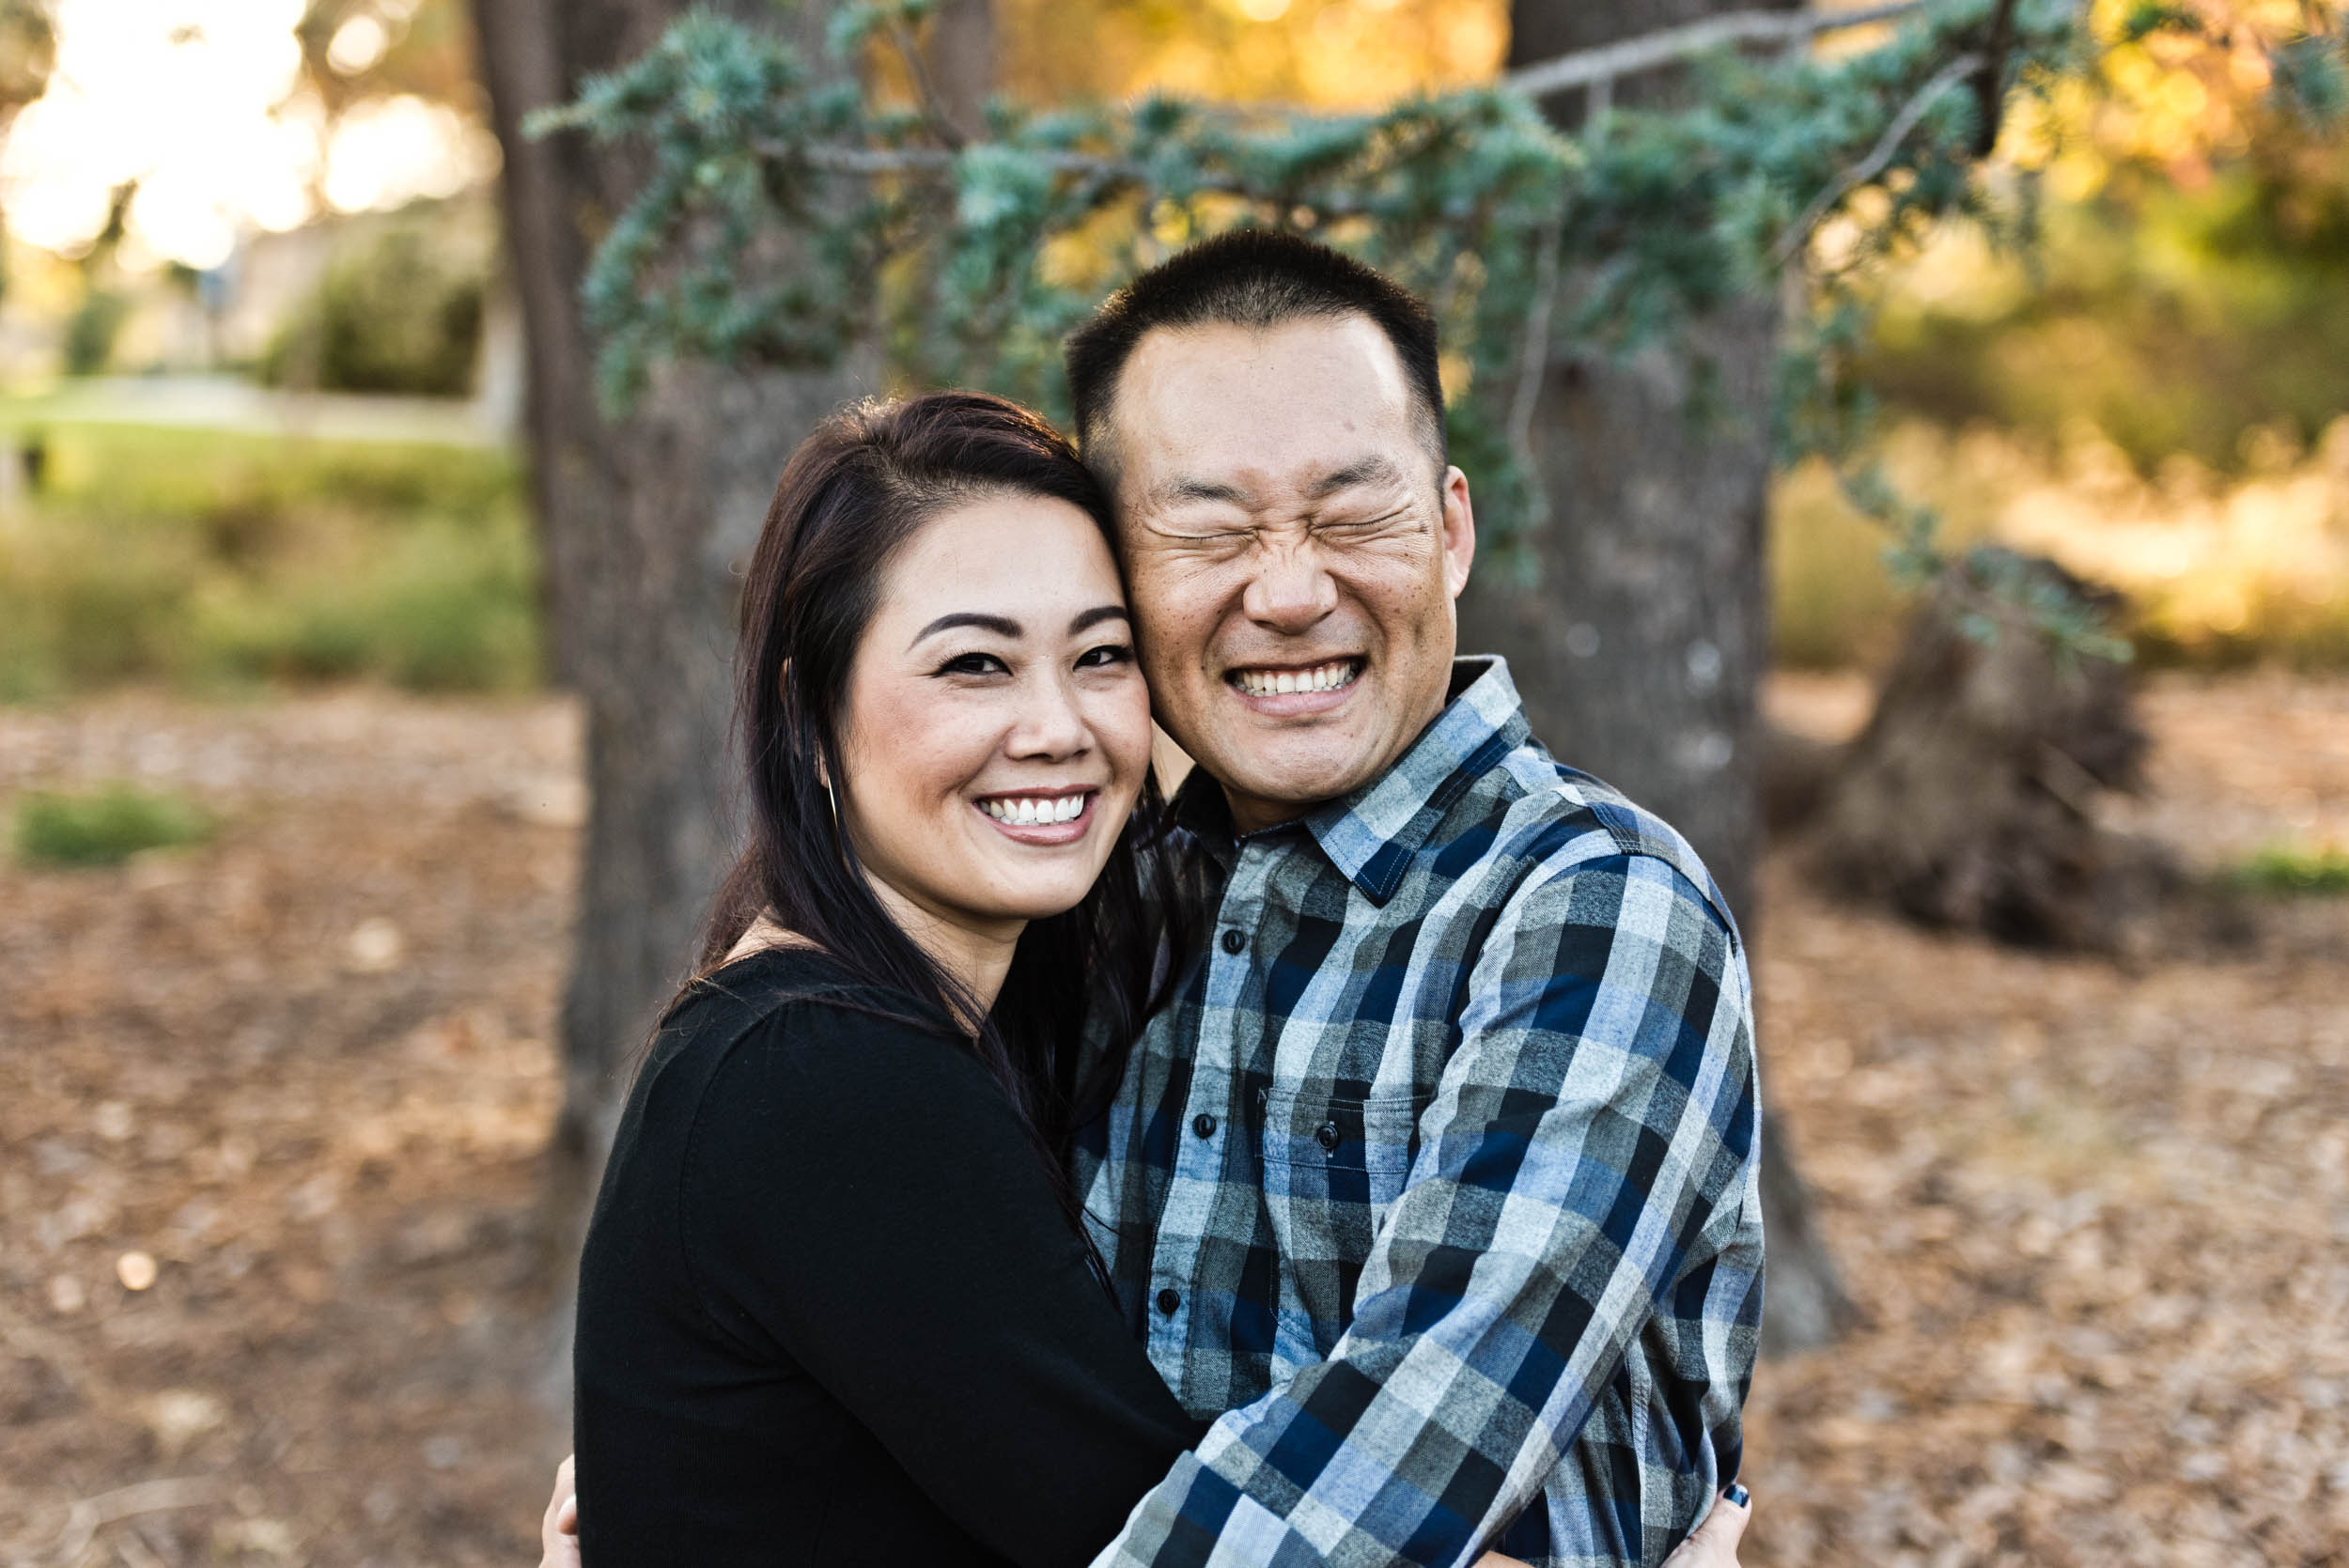 Mom and dad hugging and smiling while basking in the golden hours of the afternoon at the park. Cedar Grove Park in Tustin, California.